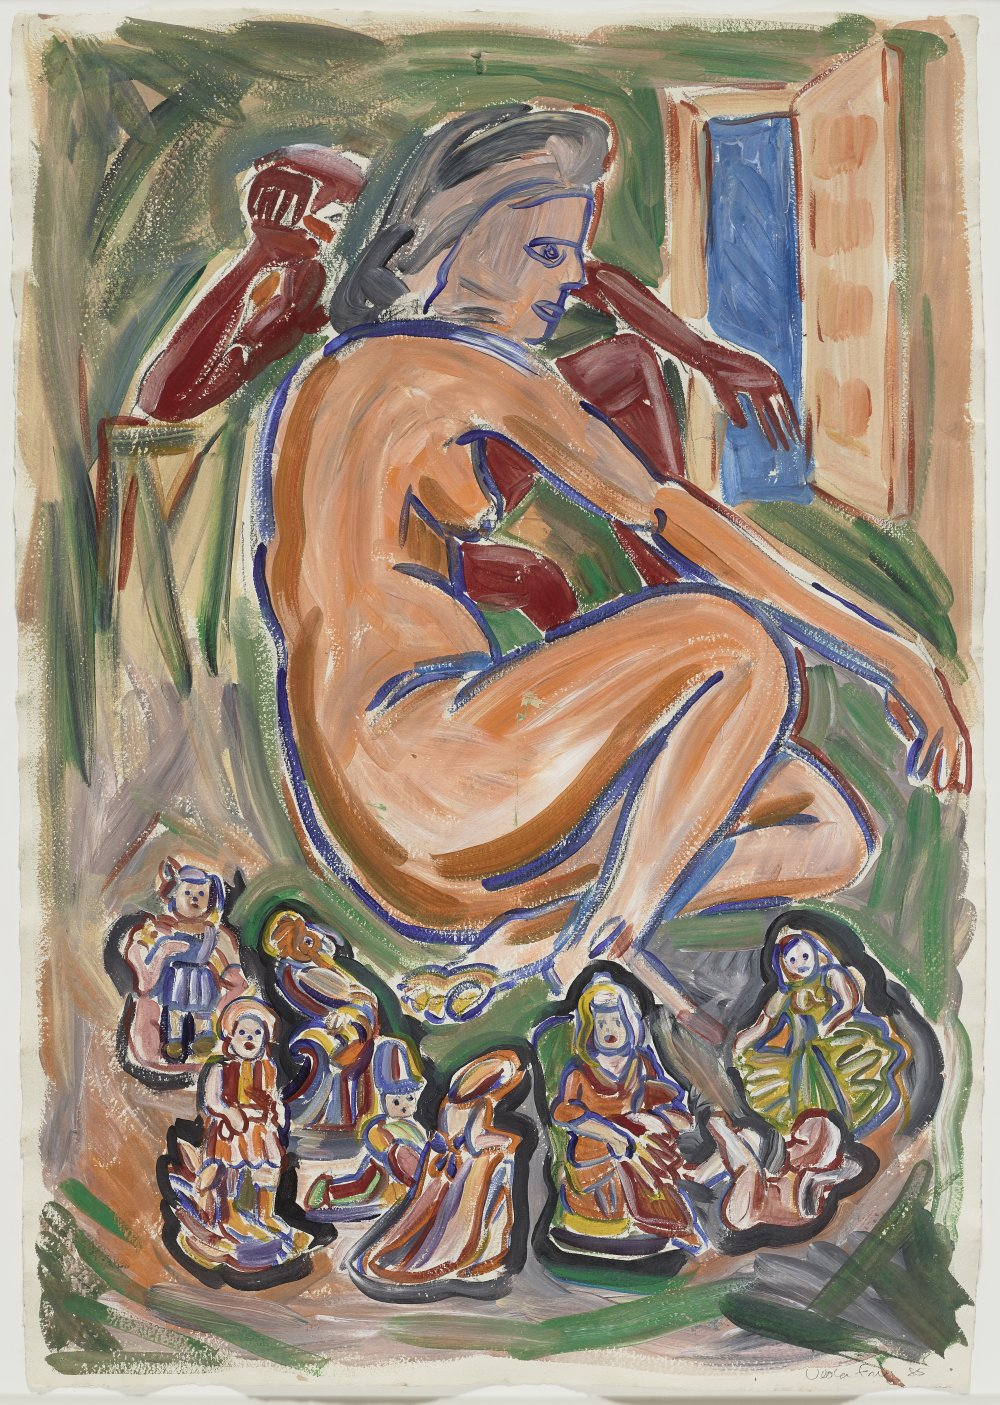 Untitled (Seated Nude and Figurines)